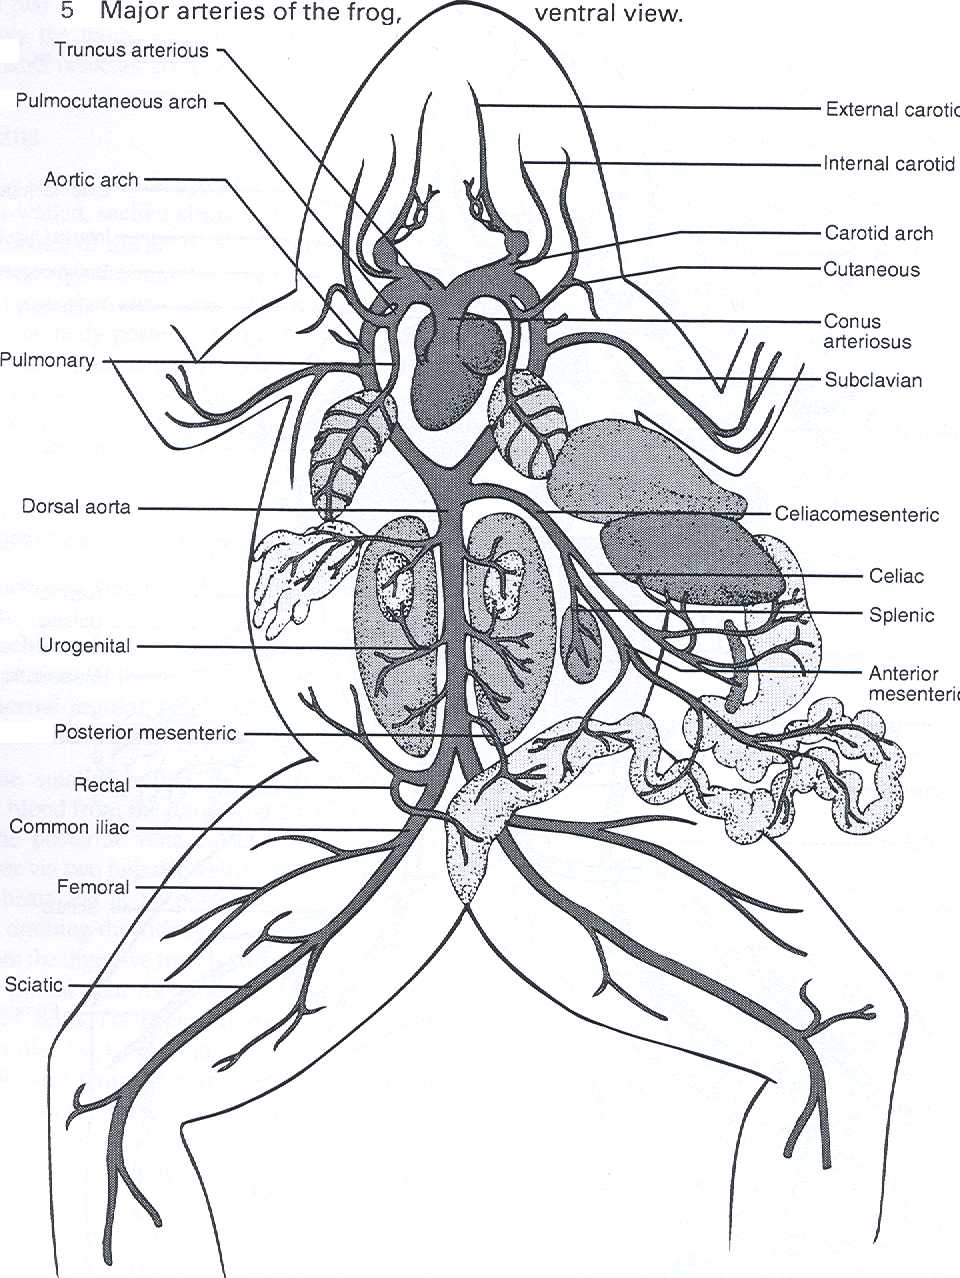 Free coloring pages of frog digestive system